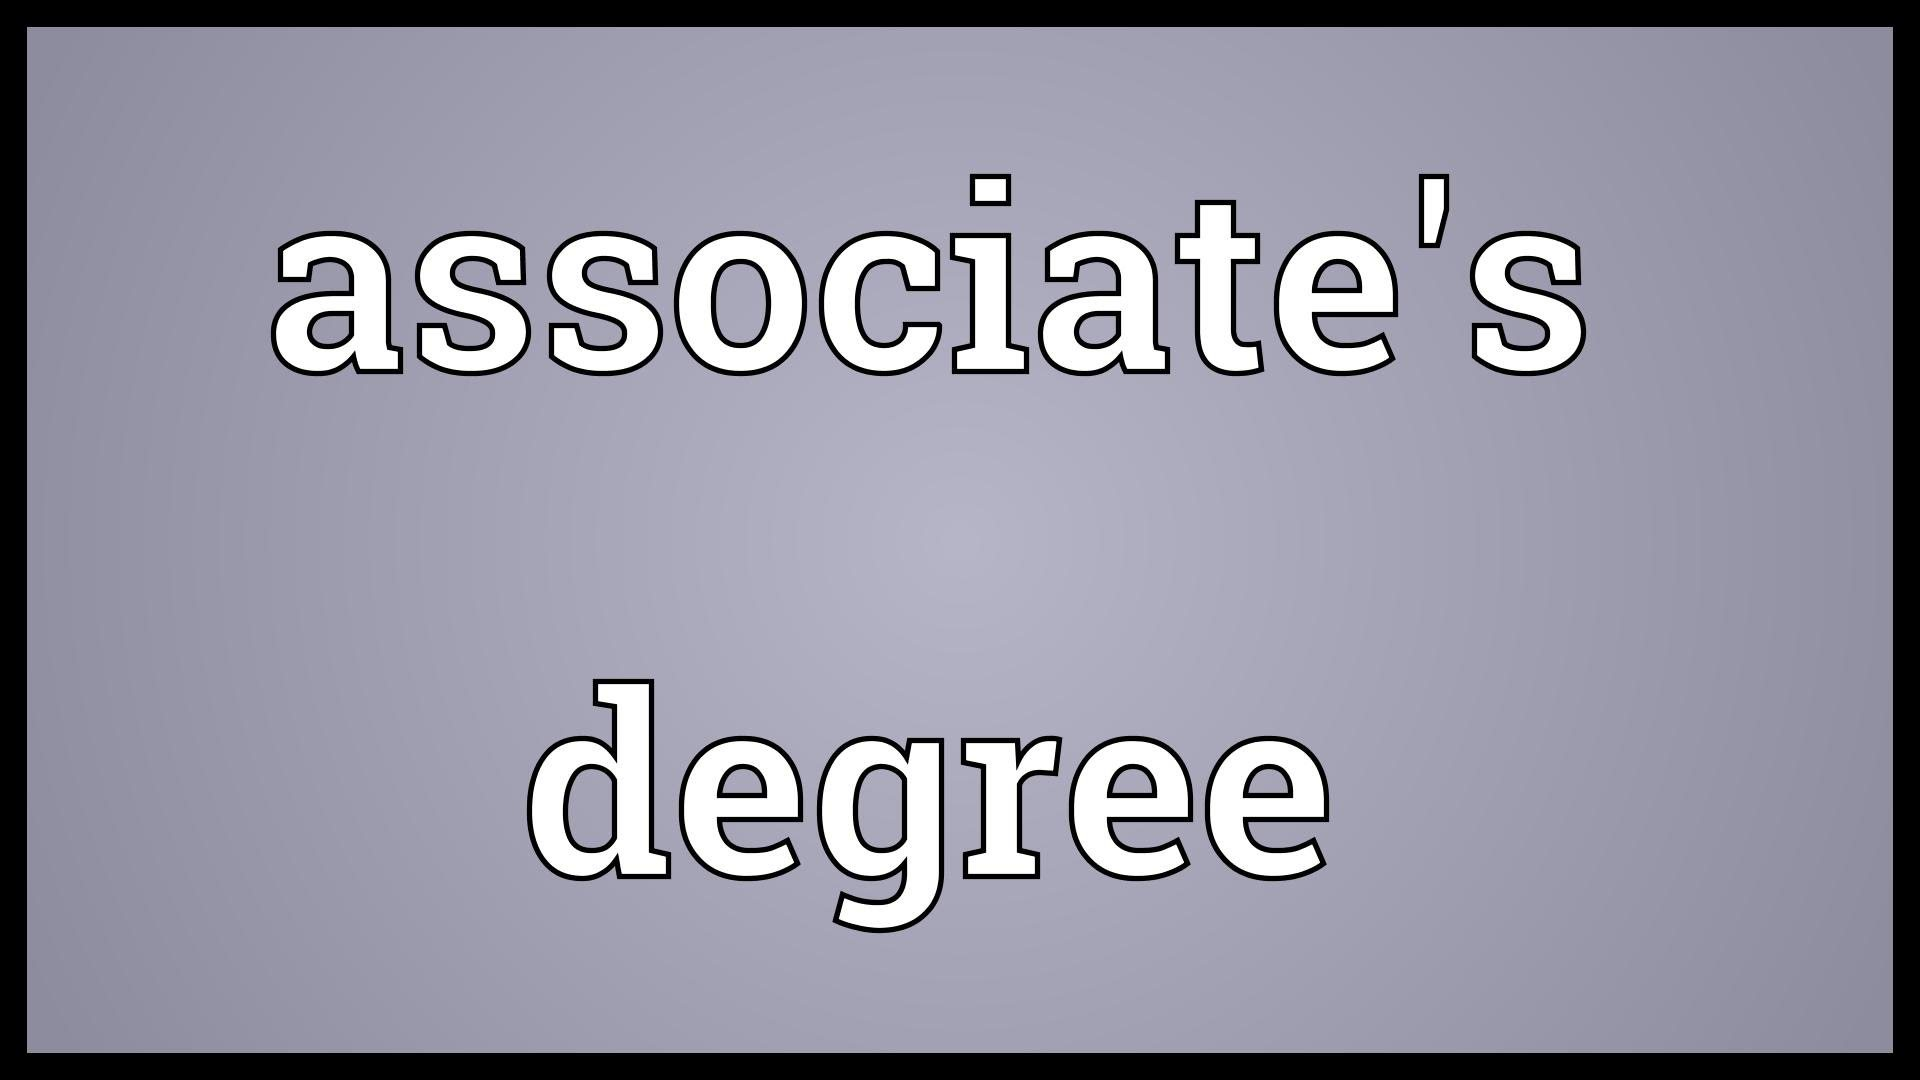 associates deegree u tube